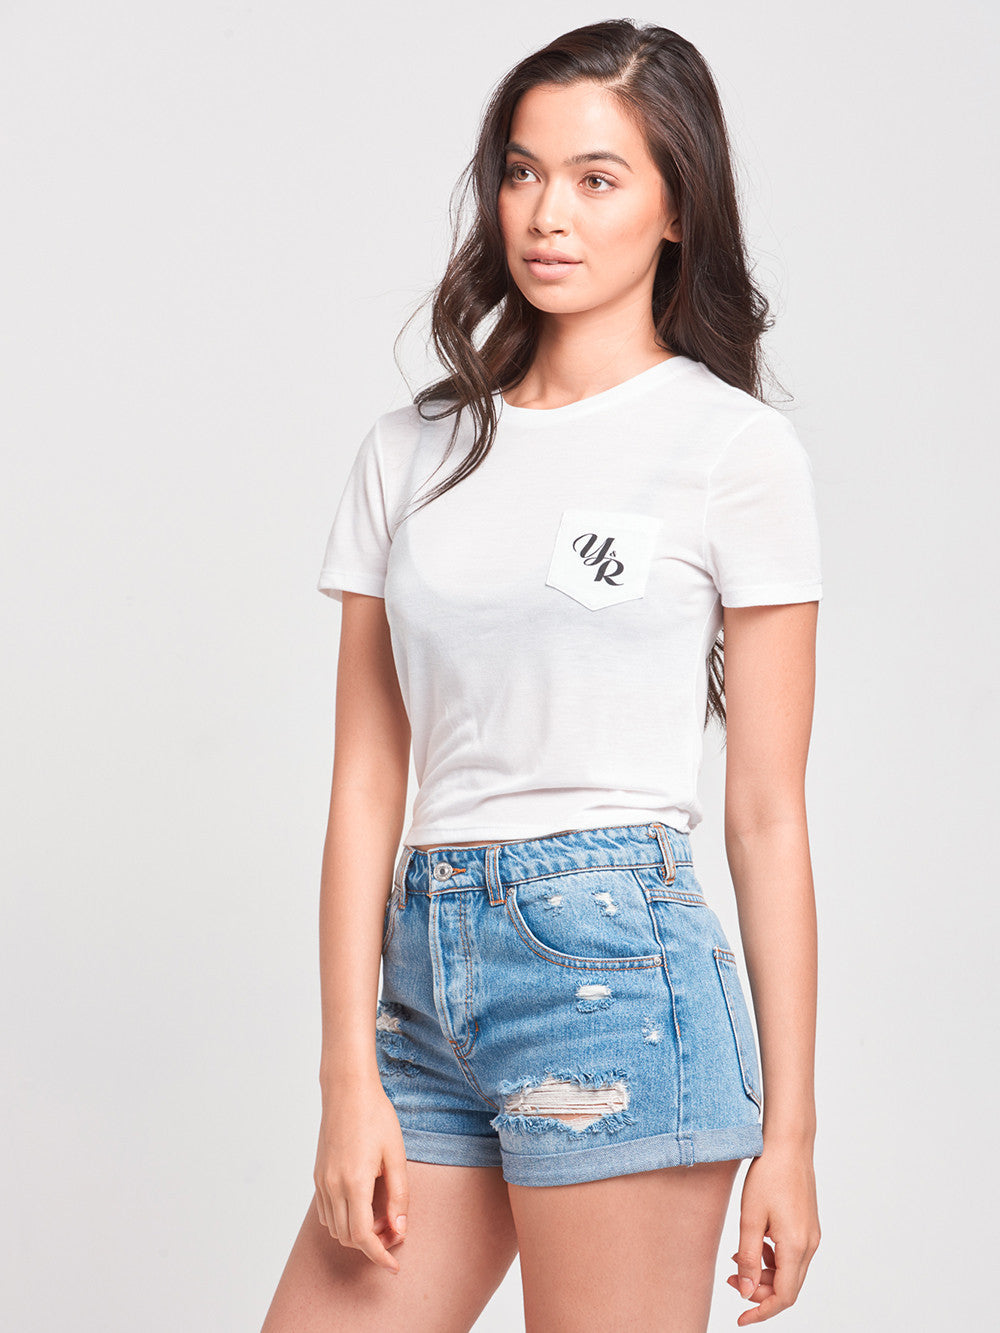 Reckless Girls Womens - Tops - Tees Elegant Cropped Pocket Tee- White